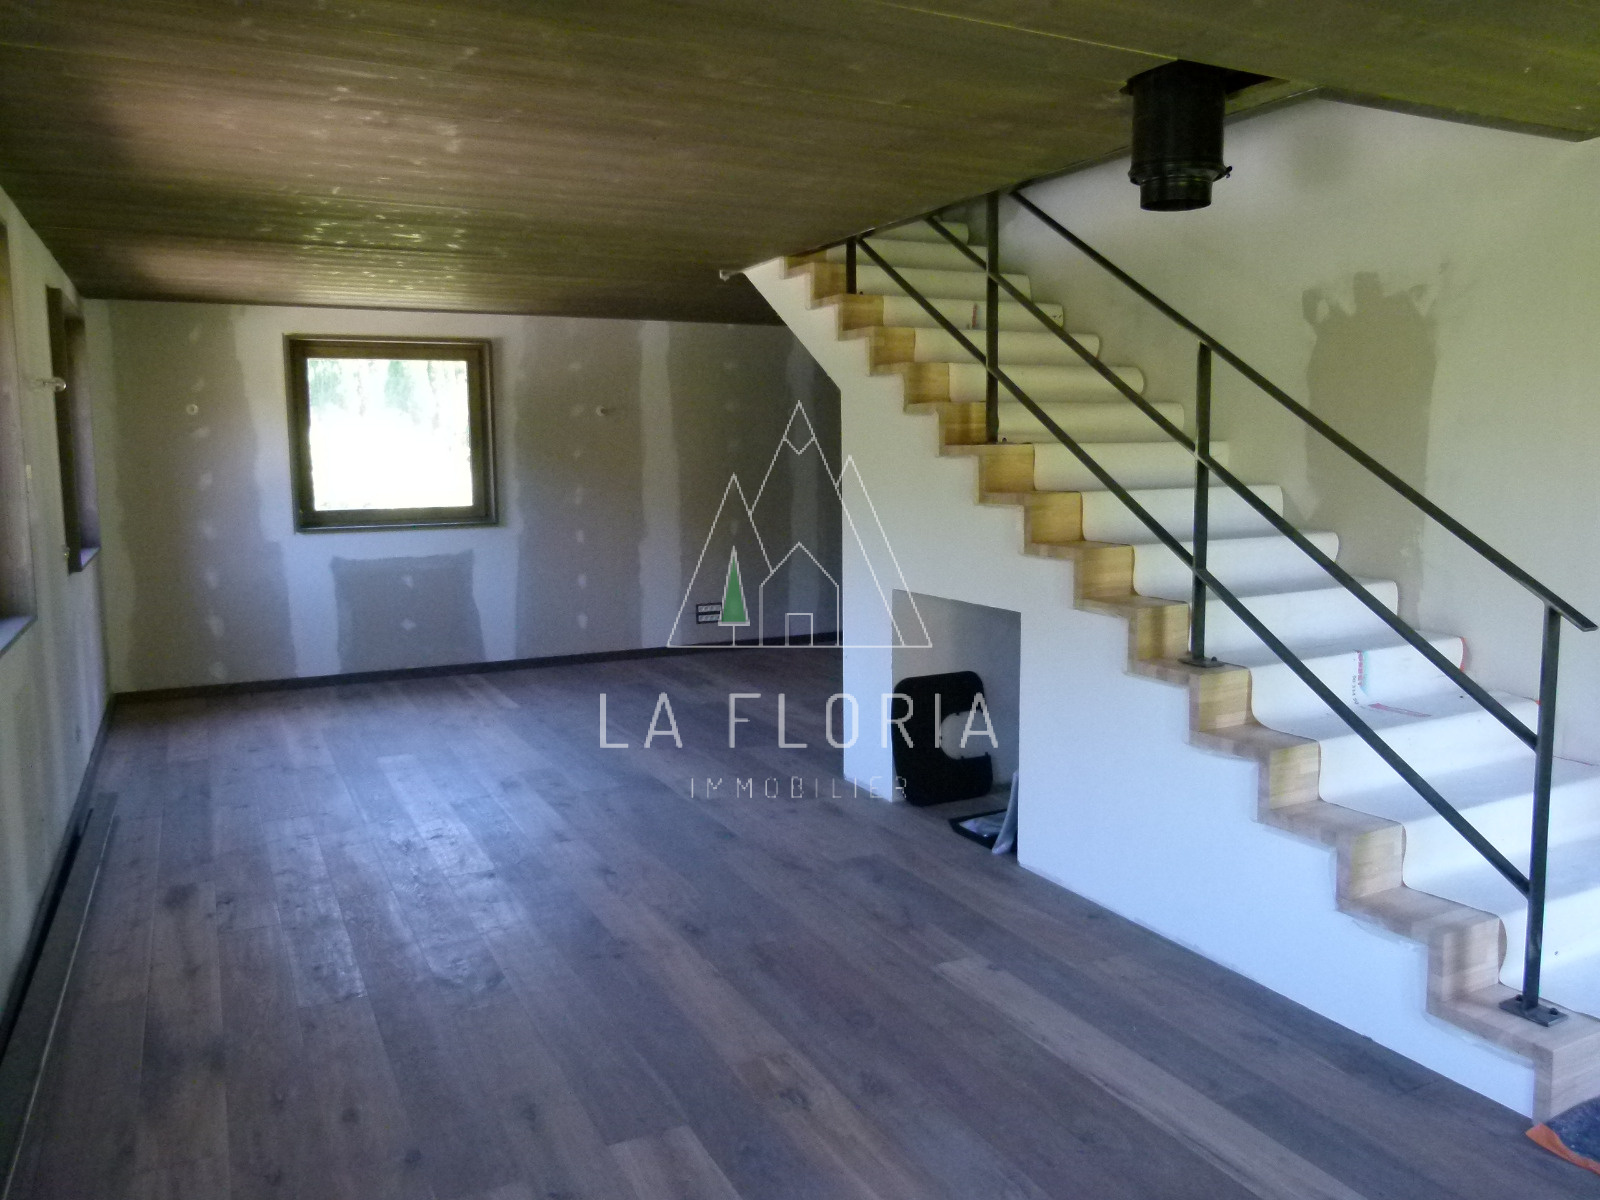 APPARTEMENT CHALET 4 CHAMBRES / 131 m2, LES HOUCHES